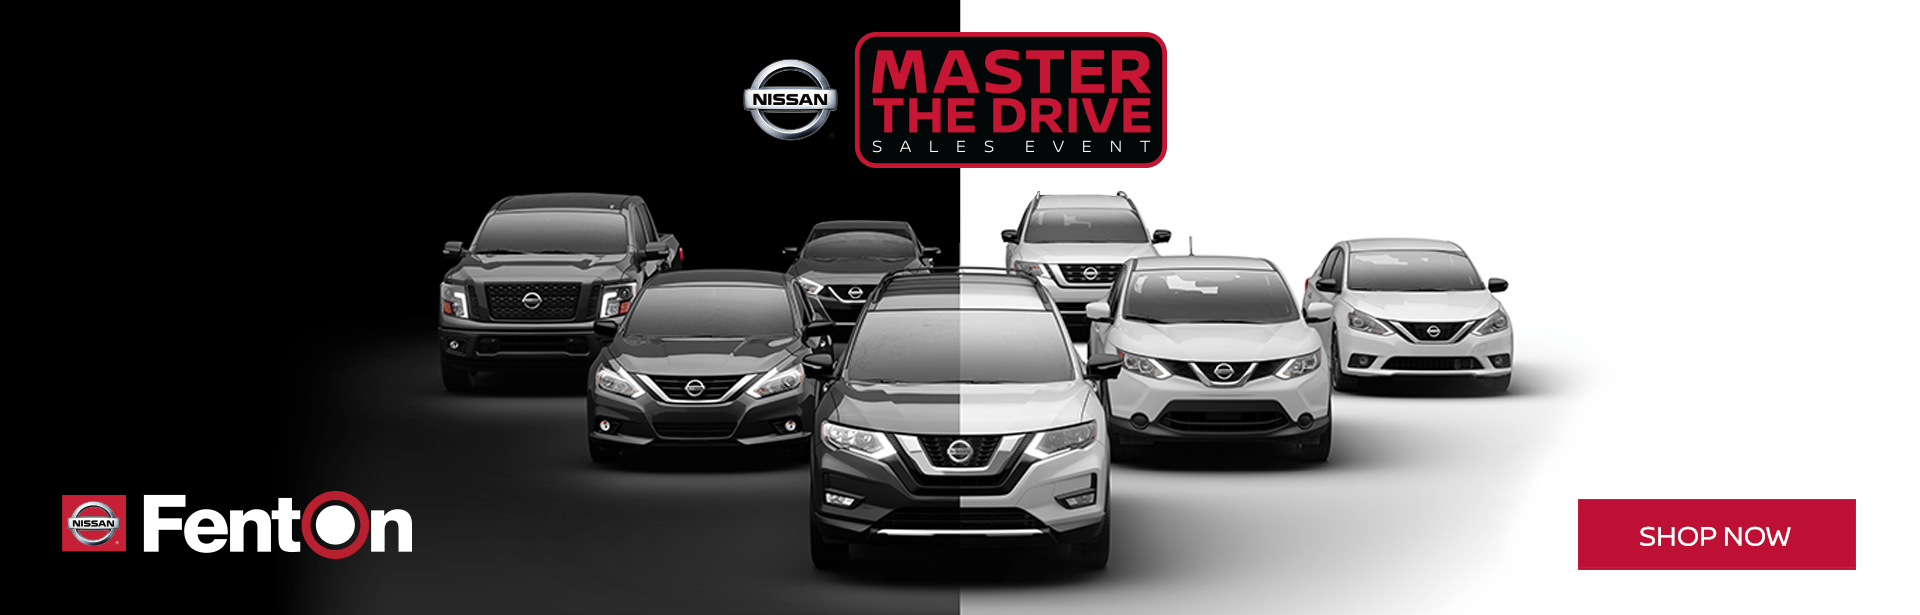 Master The Drive